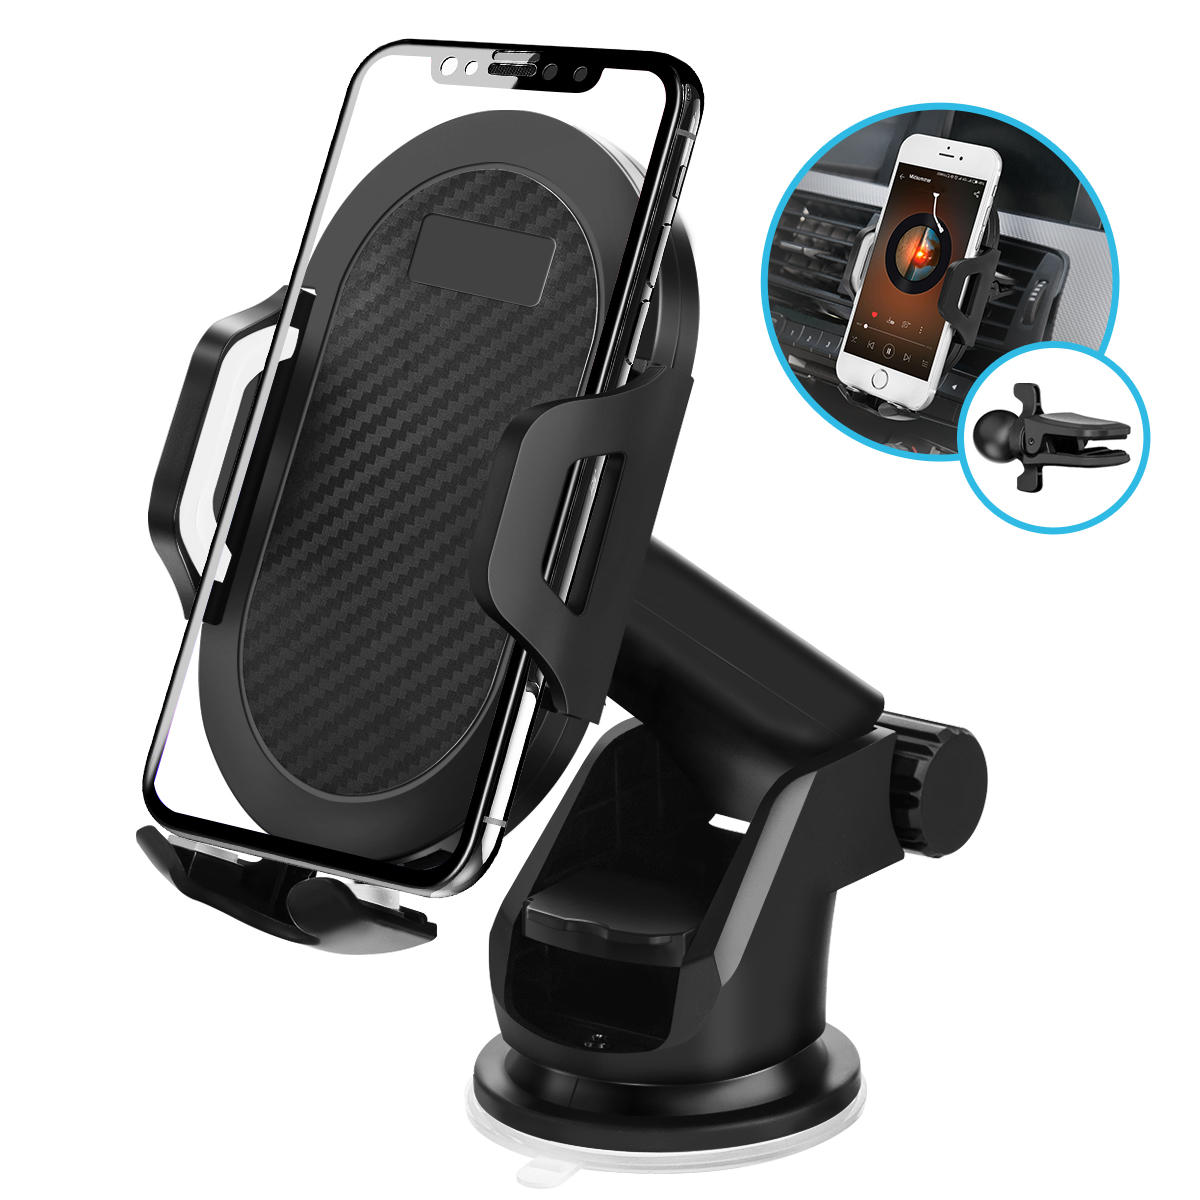 ELEGIANT 2 I 1 Car Air Vent Dashboard Sugekop Car Phone Holder For 4.0 Inch - 6,5 Tommer Smart Phone iPhone XS Max Samsung Galaxy S10 Plus